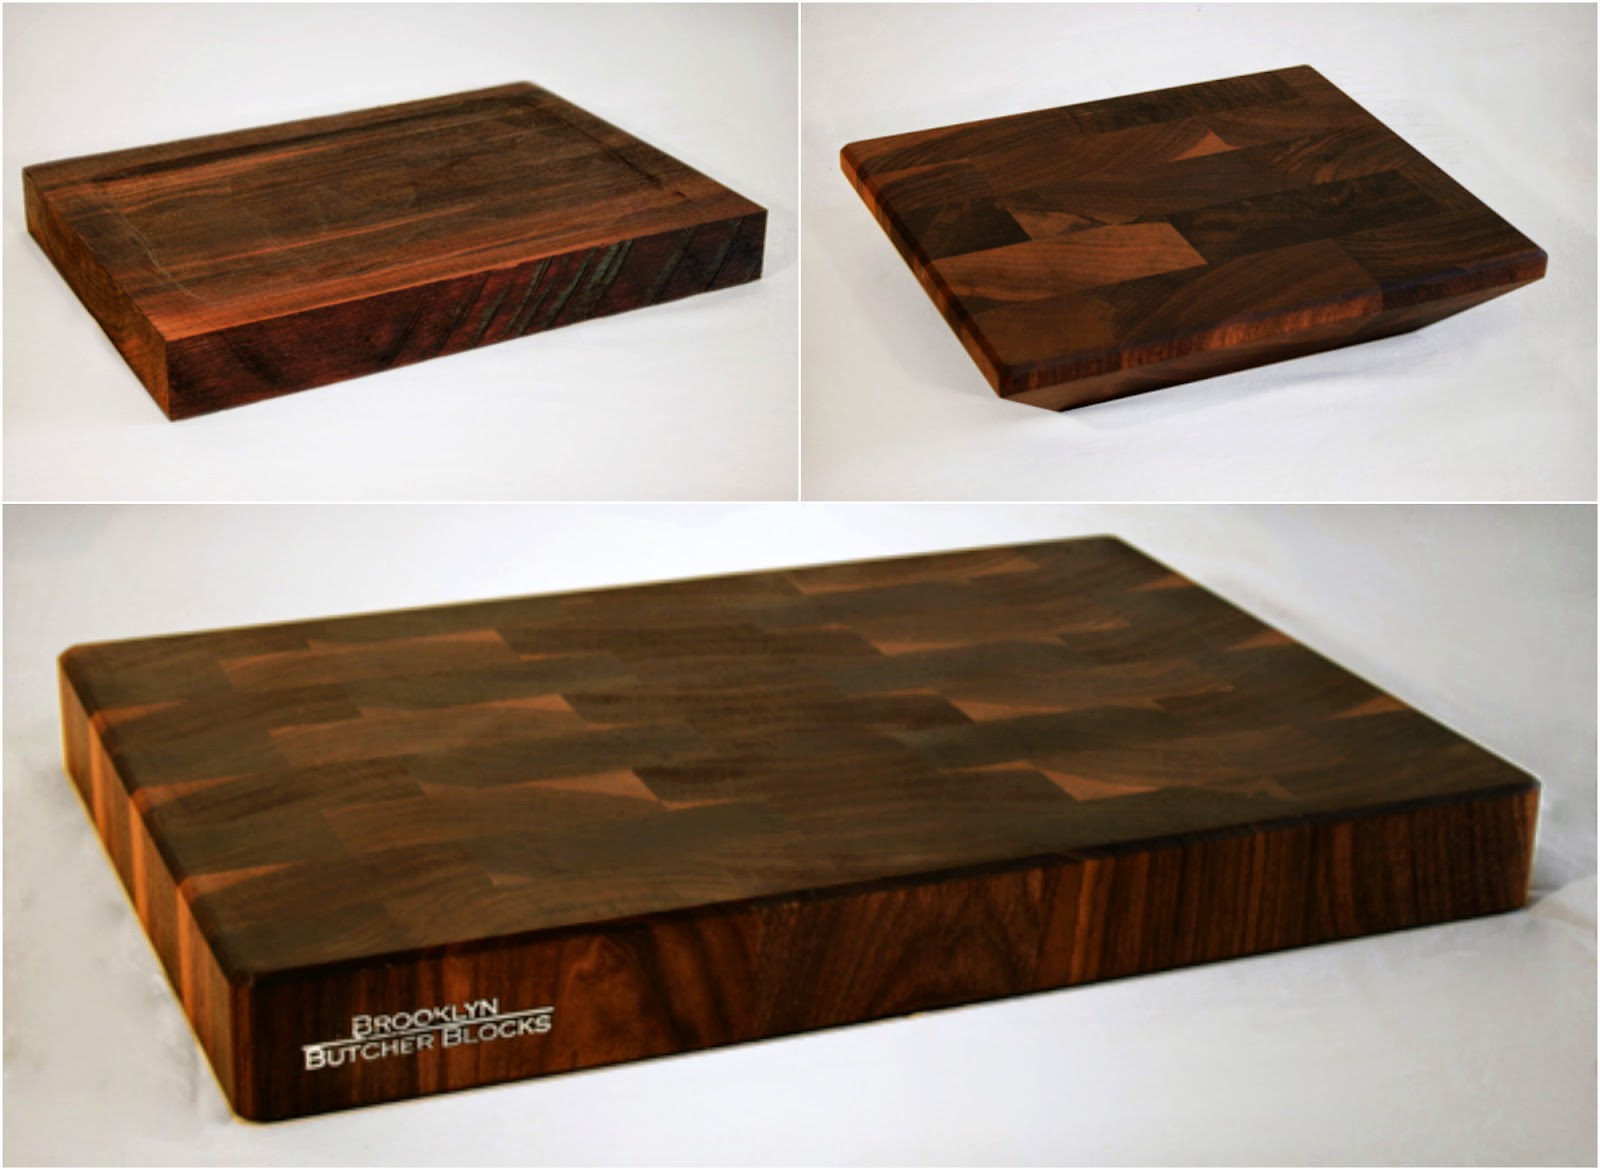 Brooklyn Butcher Blocks feature & GIVEAWAY! on Shop Small Saturday Showcase at Diane's Vintage Zest!